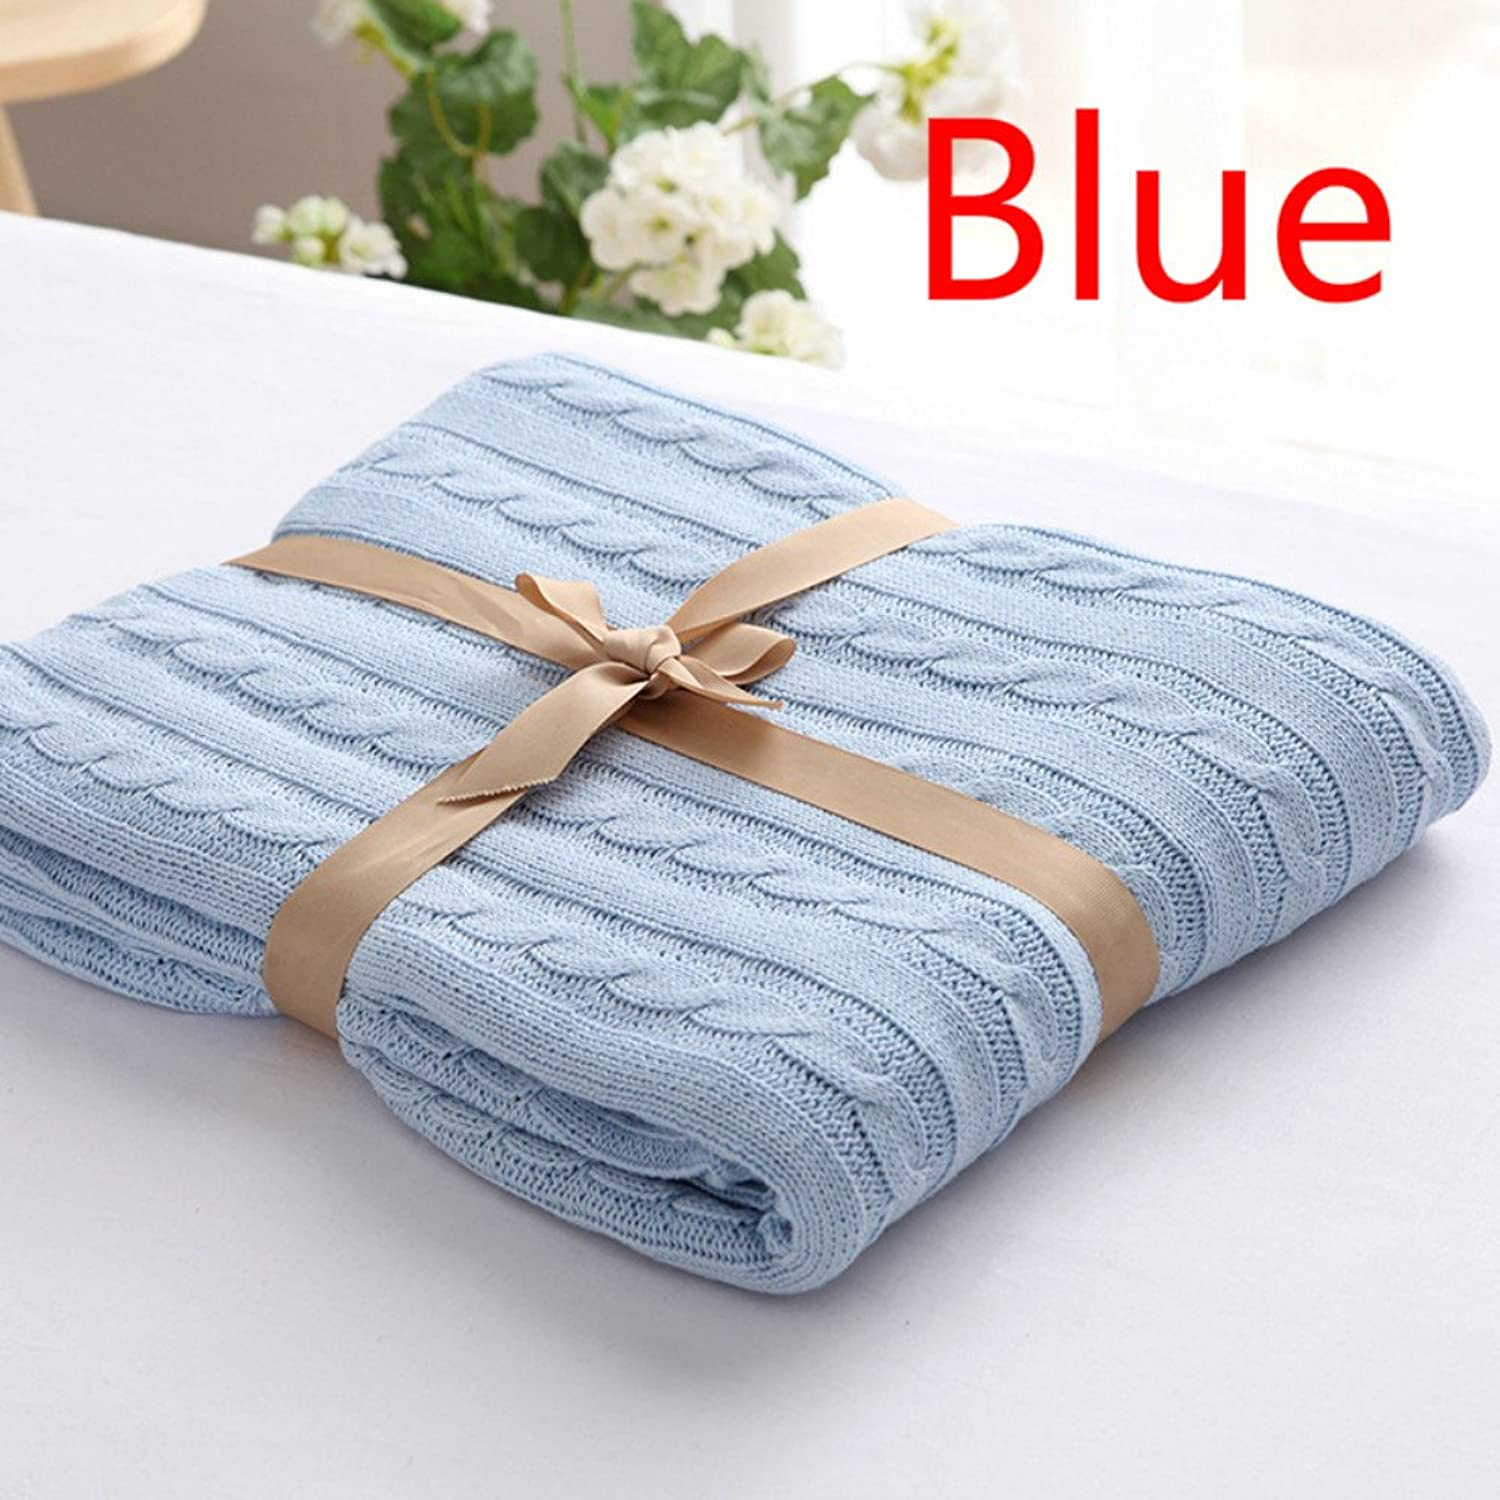 LINFON Handmade Cotton Cable Knit Throw Blanket Crocheted Blanket Cotton Throw Soft Warm Sleeping Cover for Kids or Adults Bedroom Sofa Bed Couch Car Quilt Living Room Office 47.3x70.9inch bluee